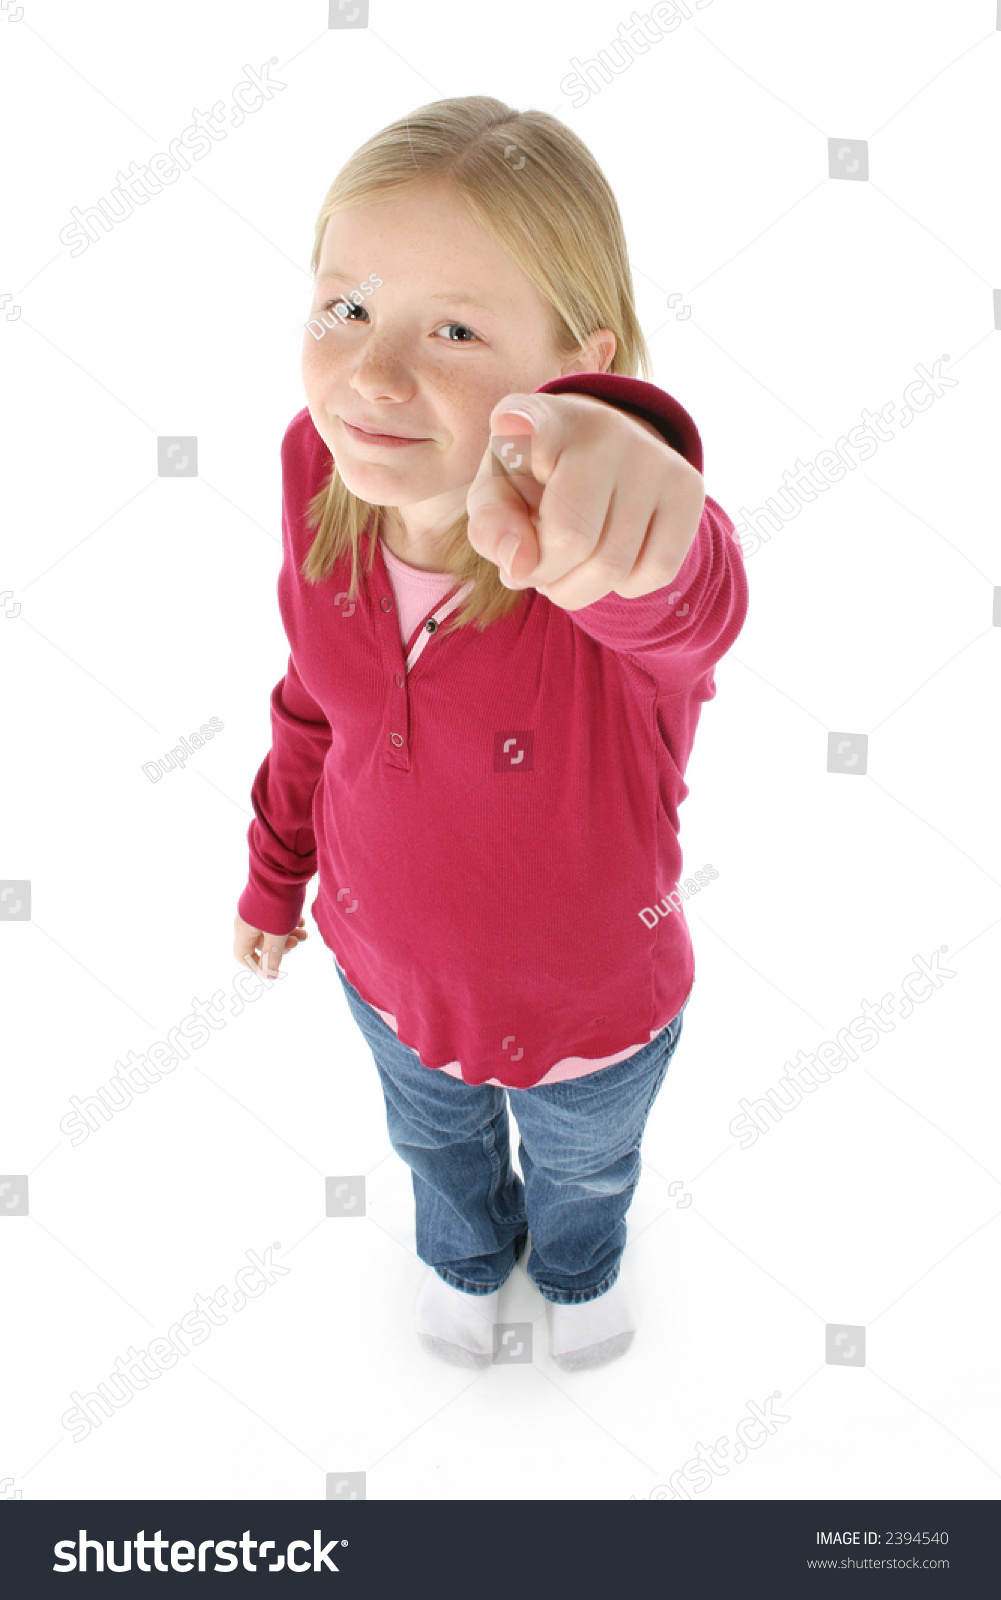 Beautiful 11 Year Old Girl Pointing Stock Photo 2394540 - Shutterstock-4167